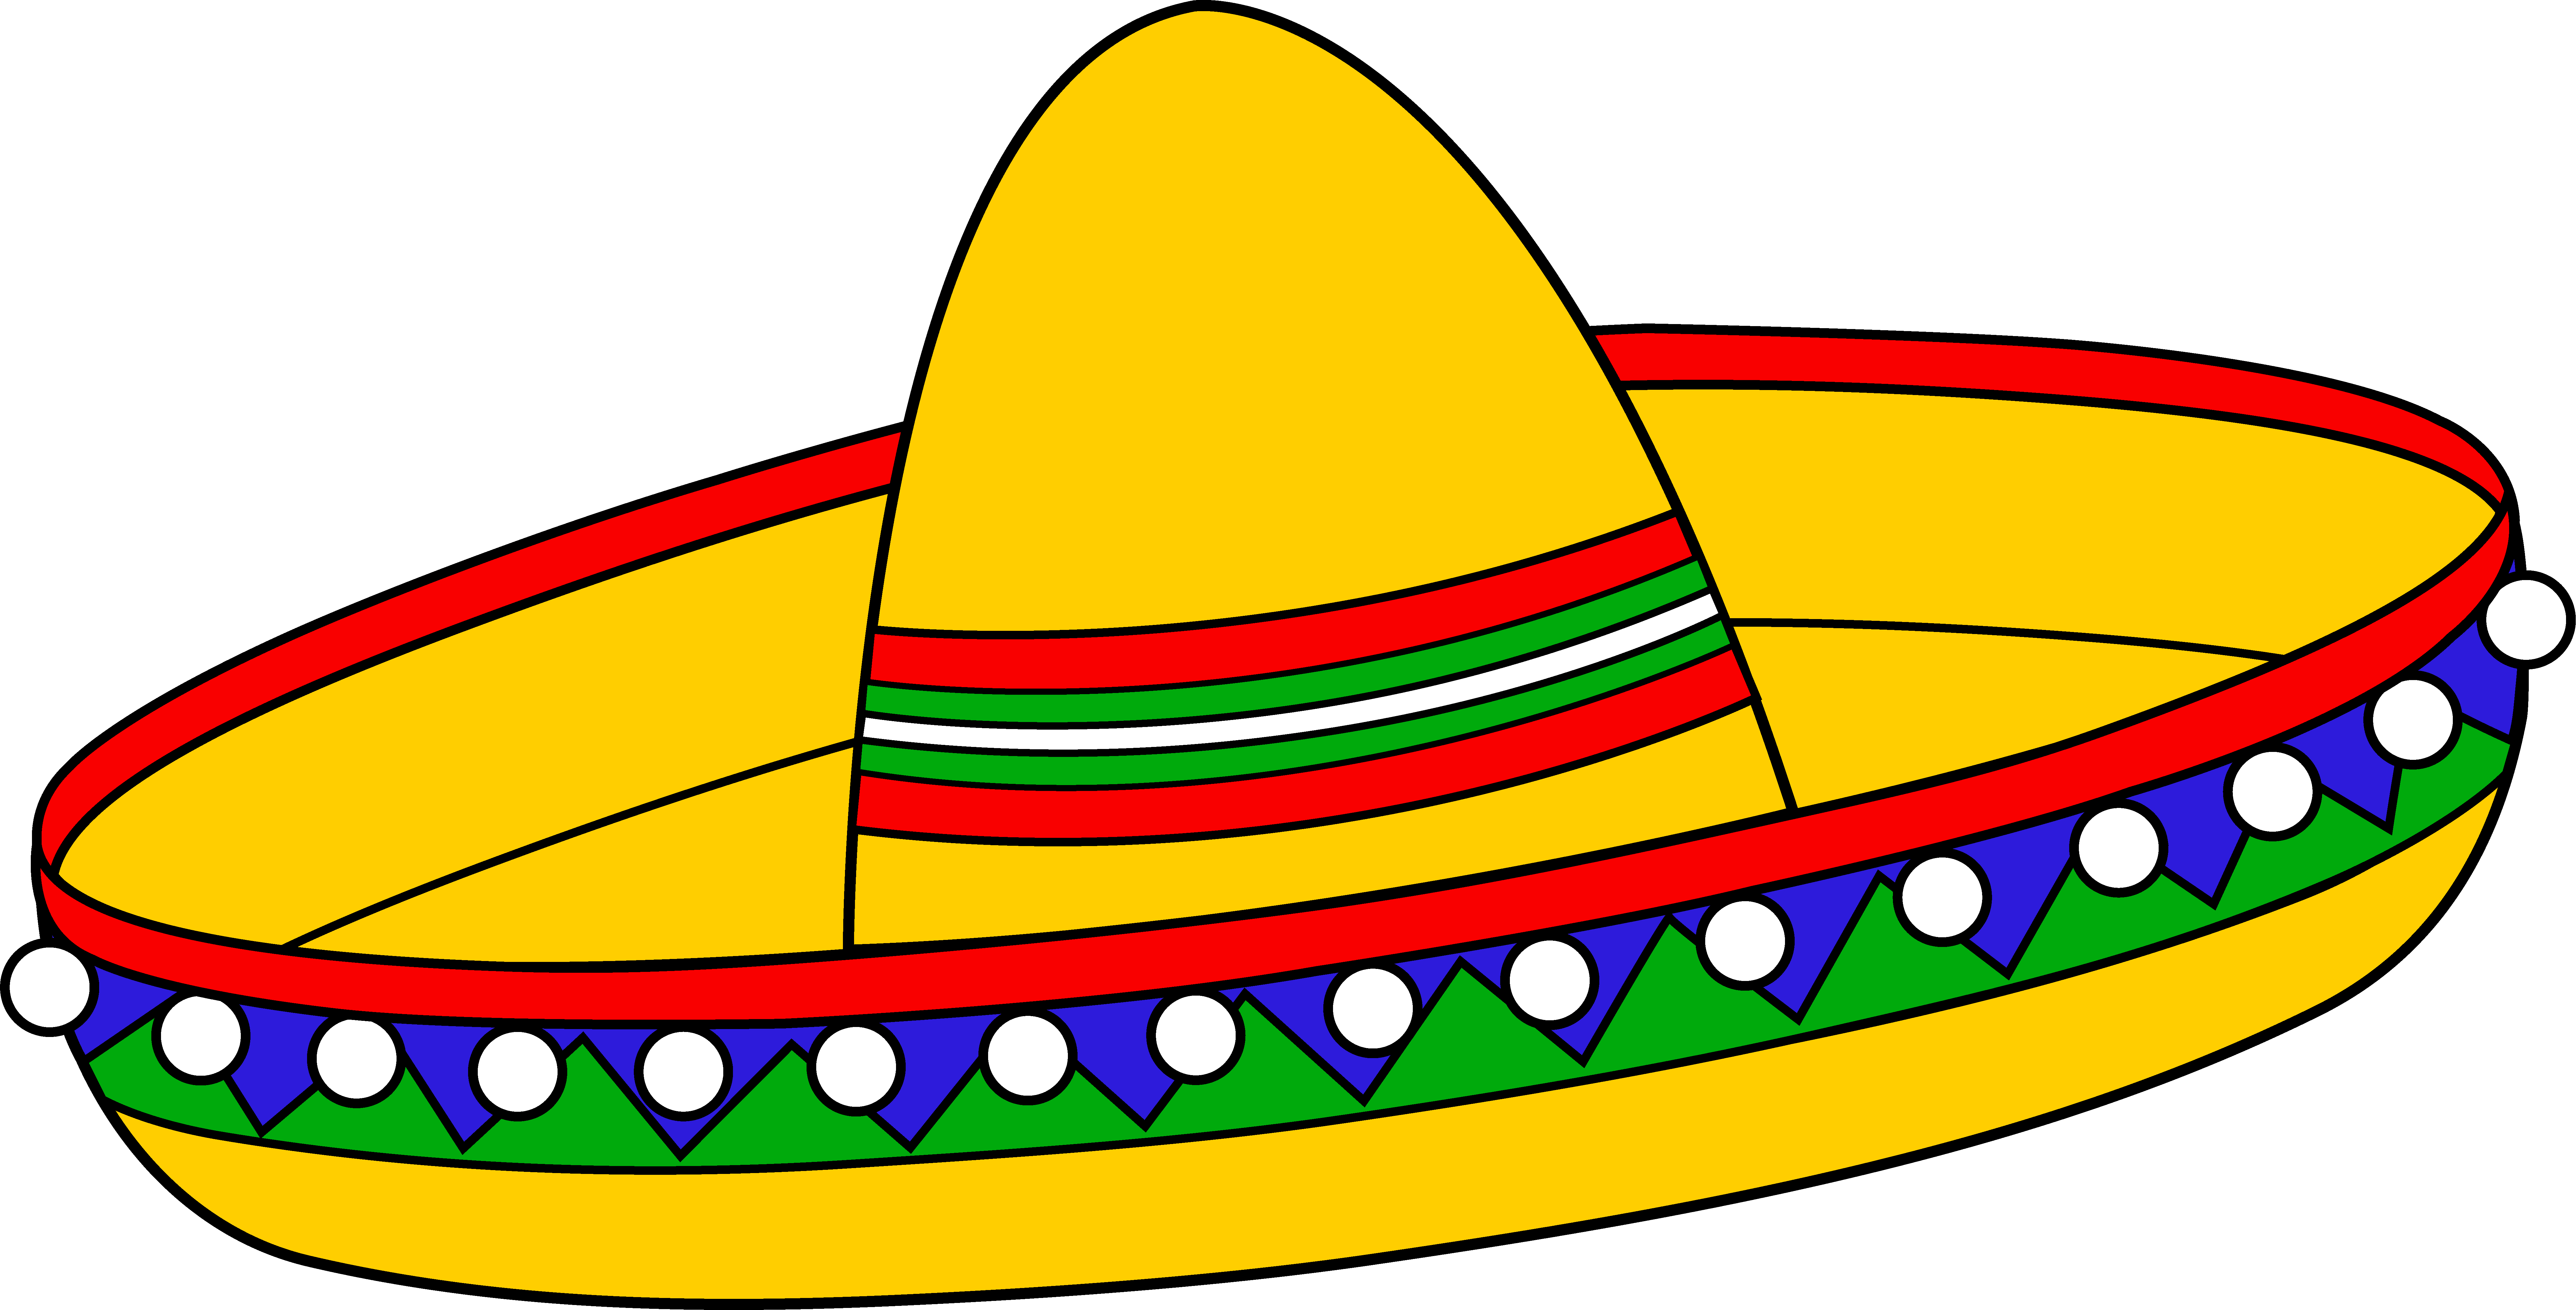 Sombrero clipart fiesta mexicana. Mexican hat drawing at